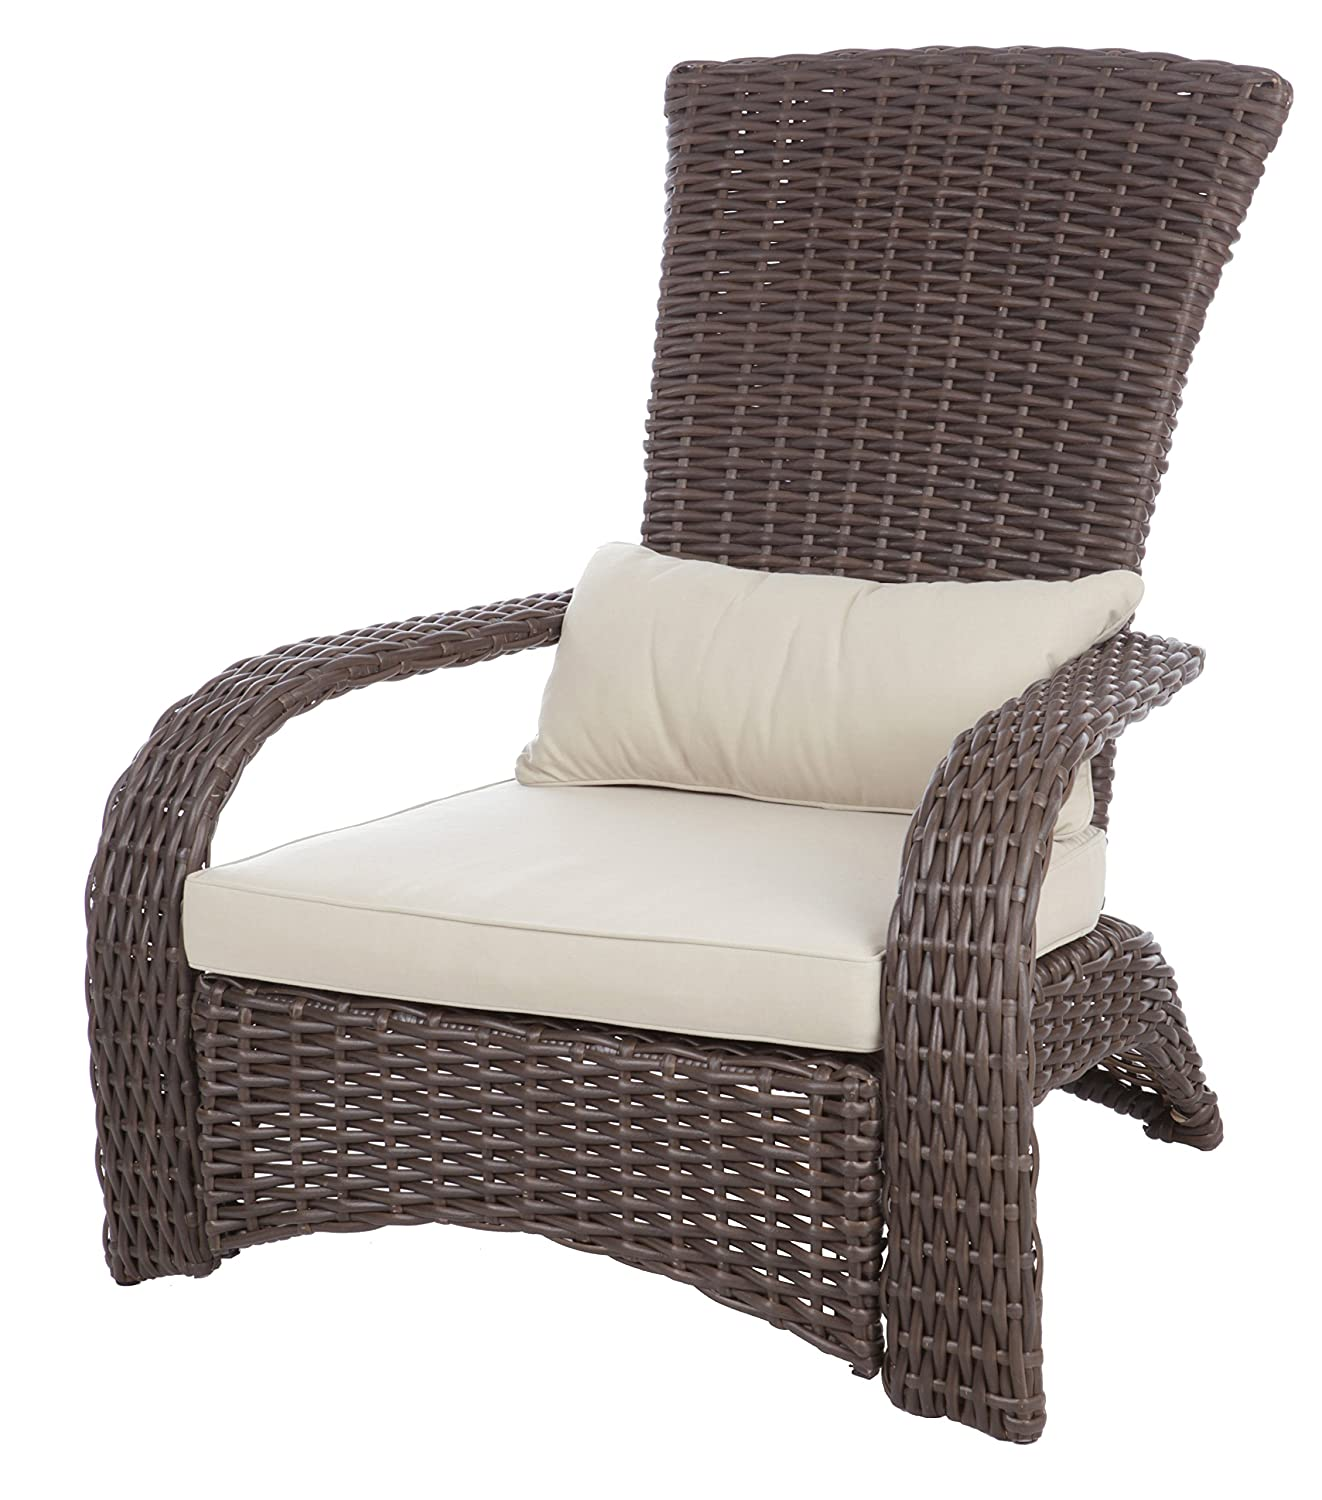 Patio Sense Deluxe Coconino Wicker Chair